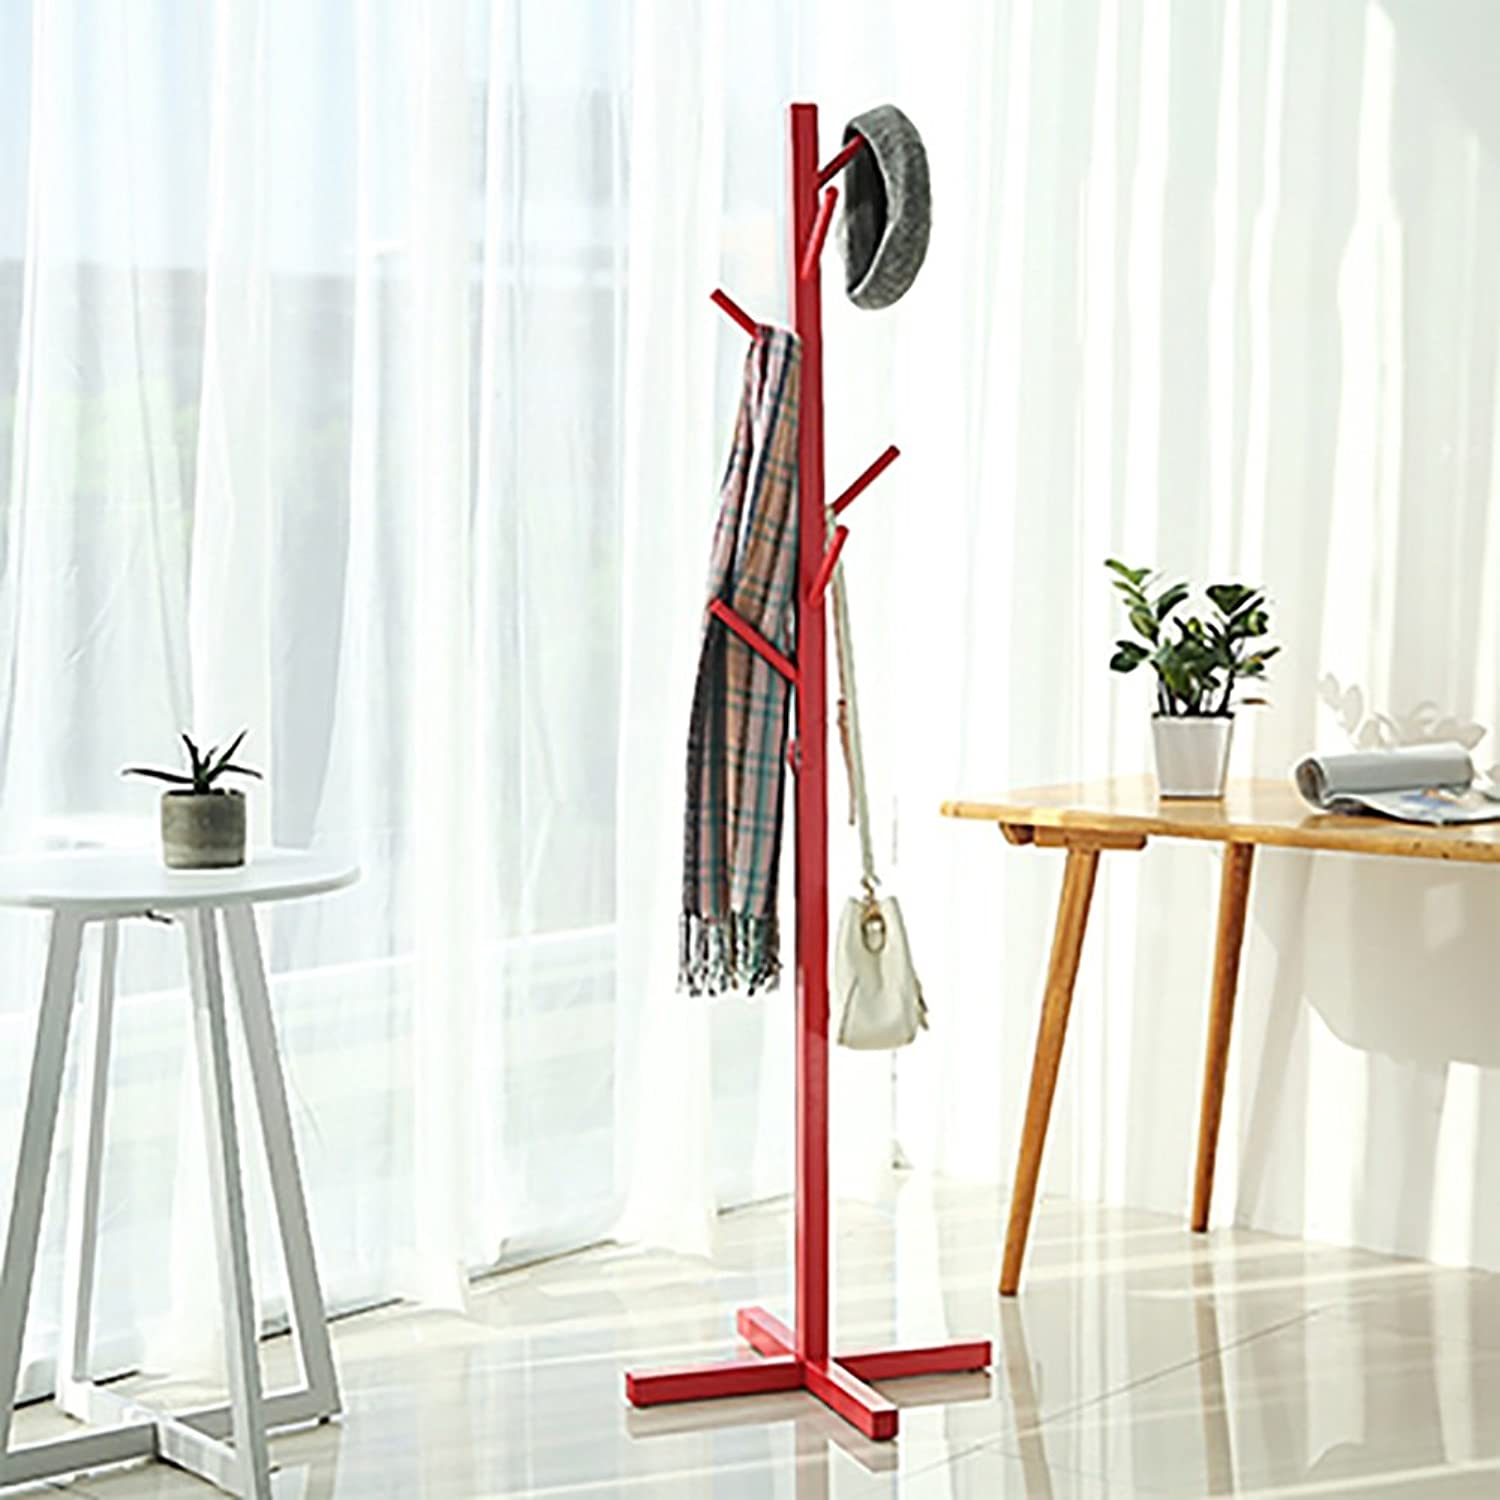 LFF- Simple Solid Wood Floor Coat Rack 50×50×165cm Living Room Bedroom Upright Hanger Storage Rack Hanger (color   Watermelon red)